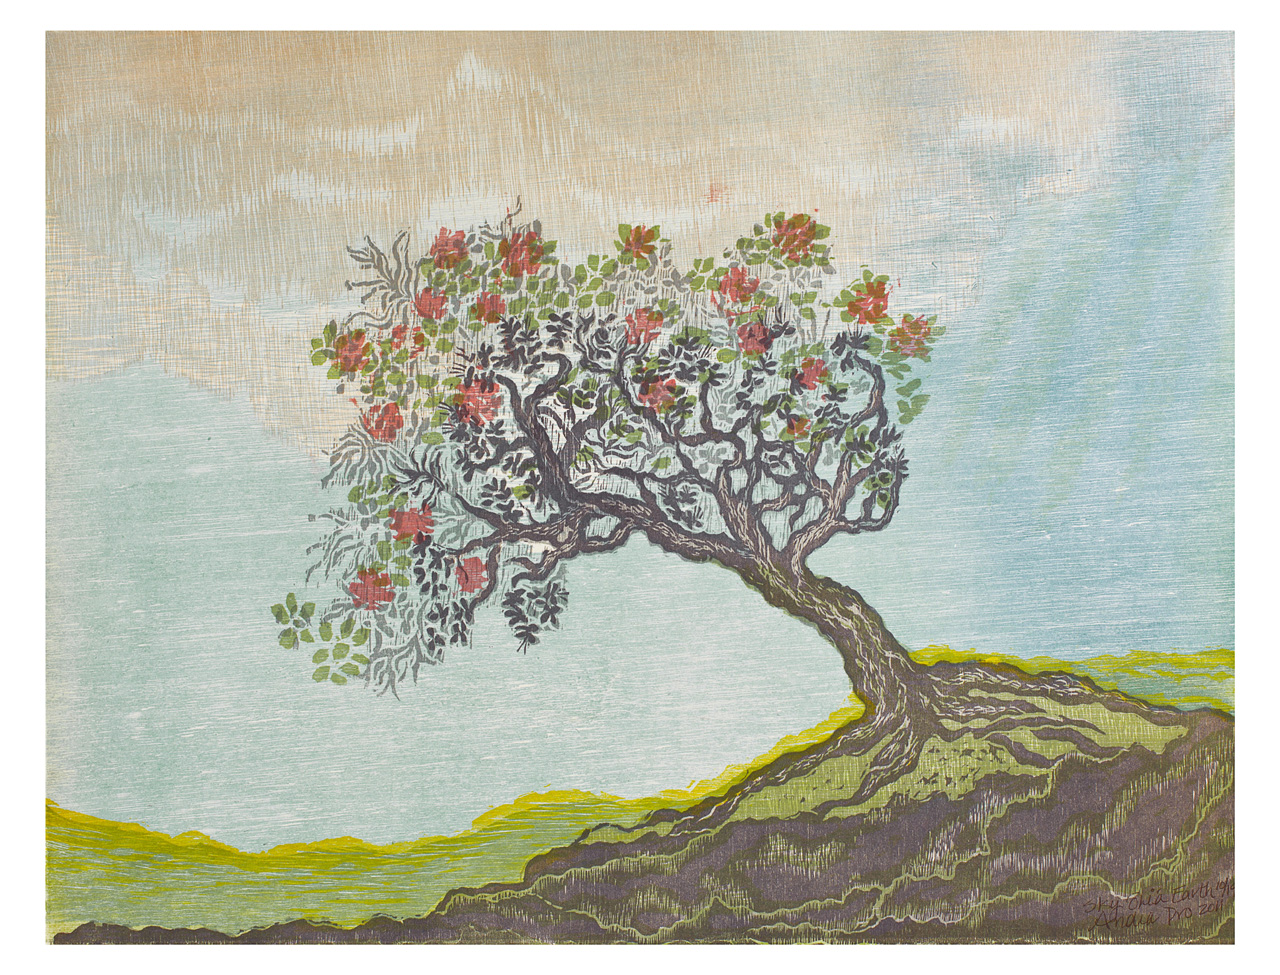 Sky Ohia Earth by Andrea Pro hand pulled print of tree